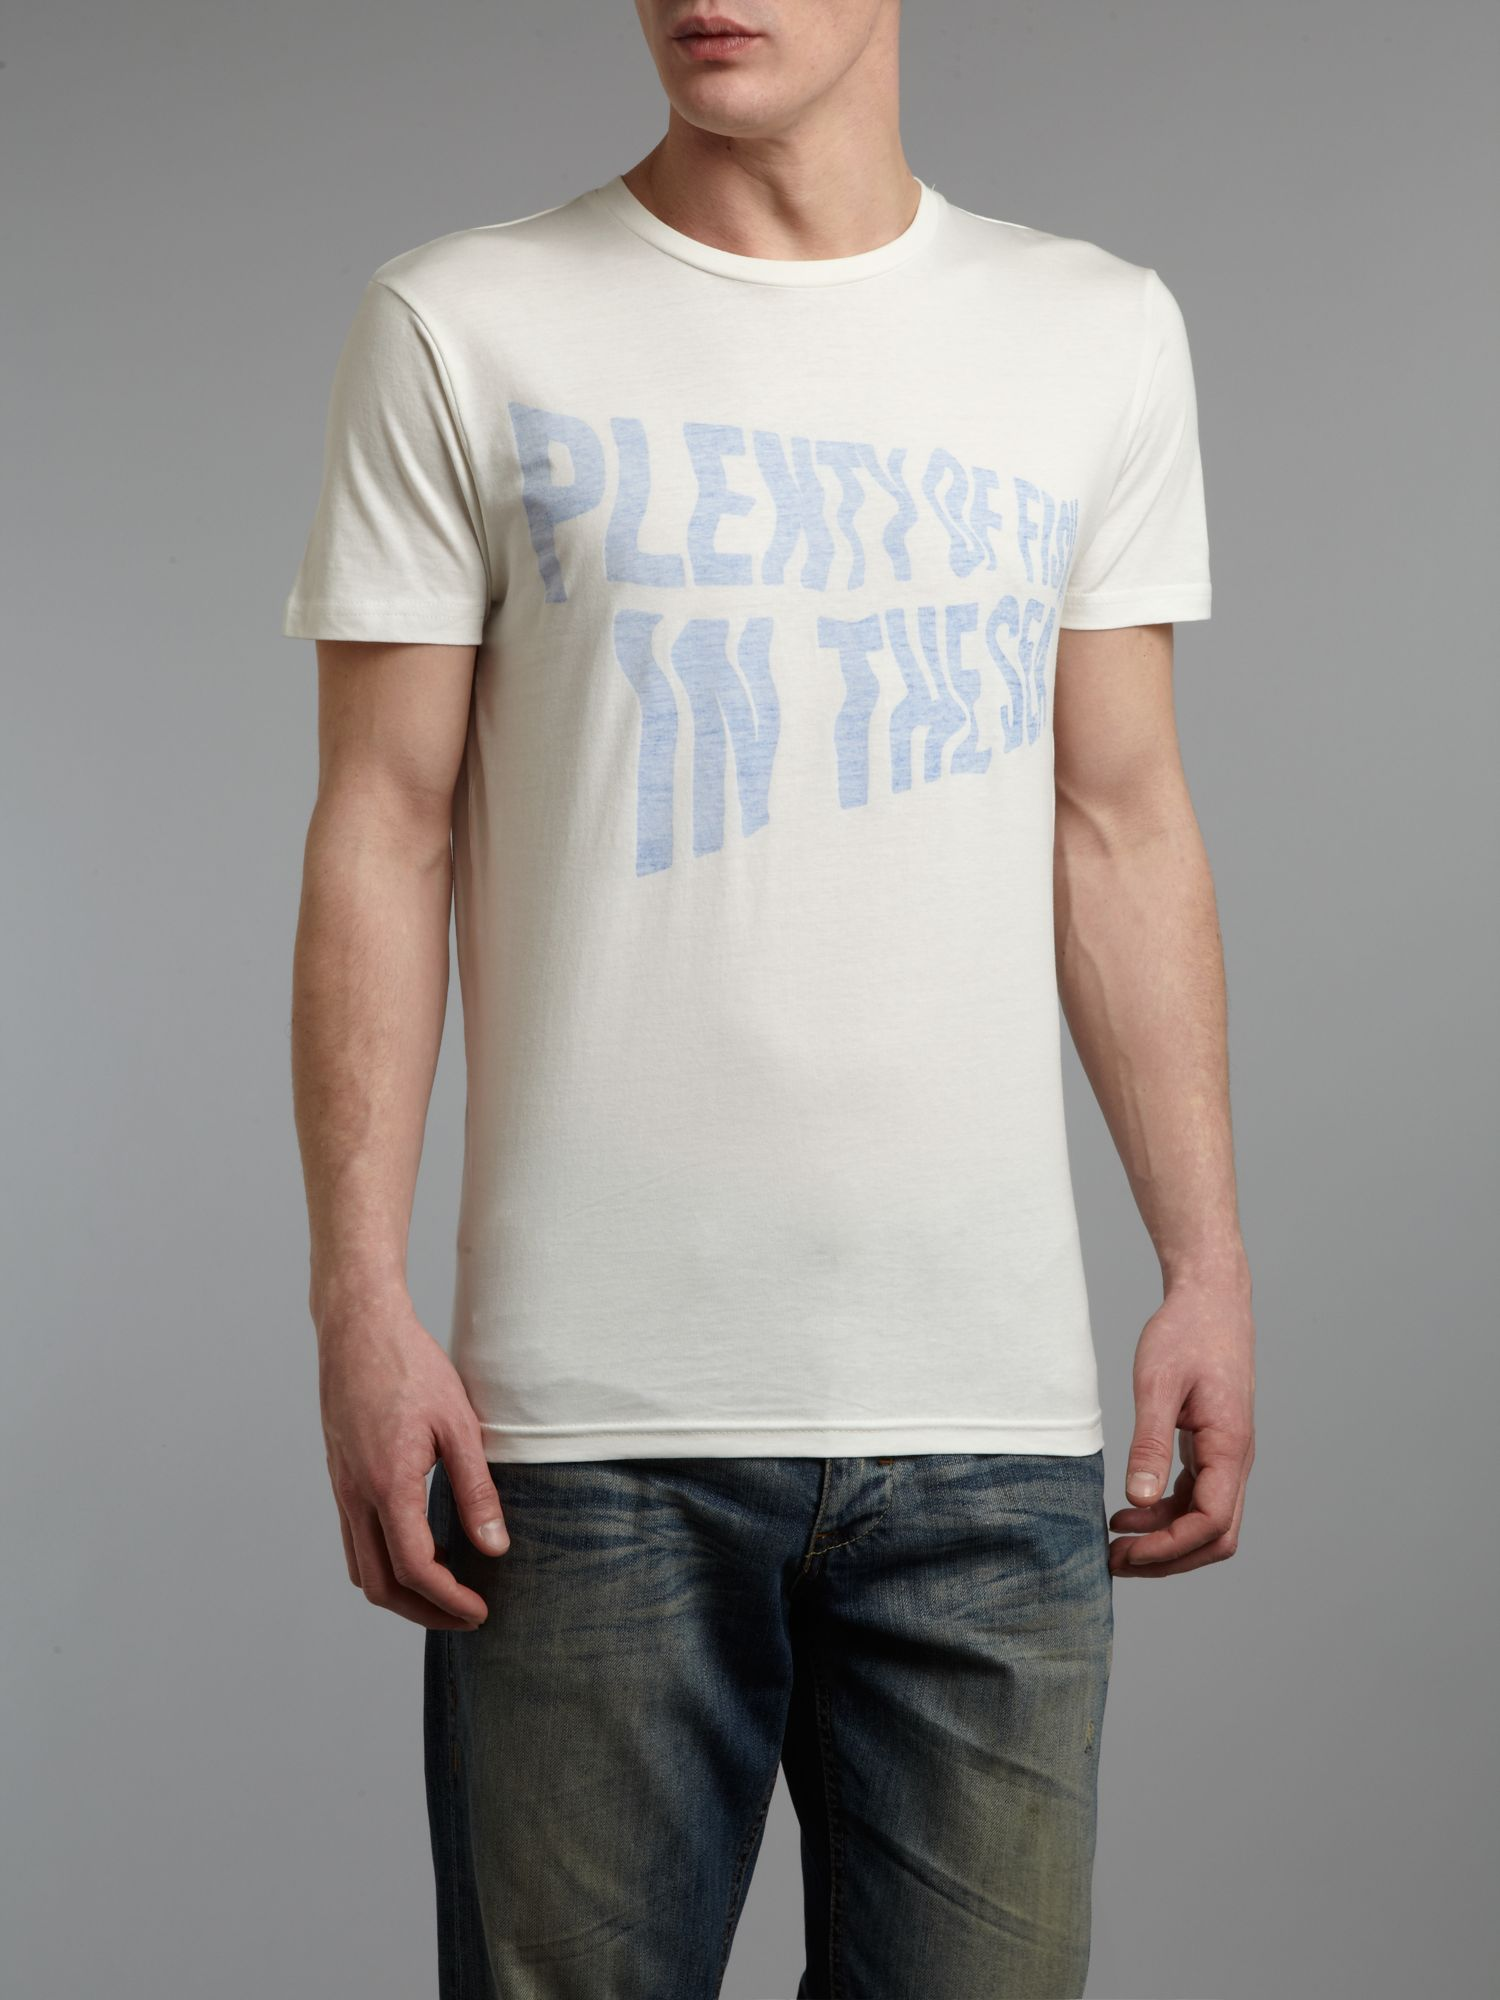 `Plenty of Fish` graphic T-shirt